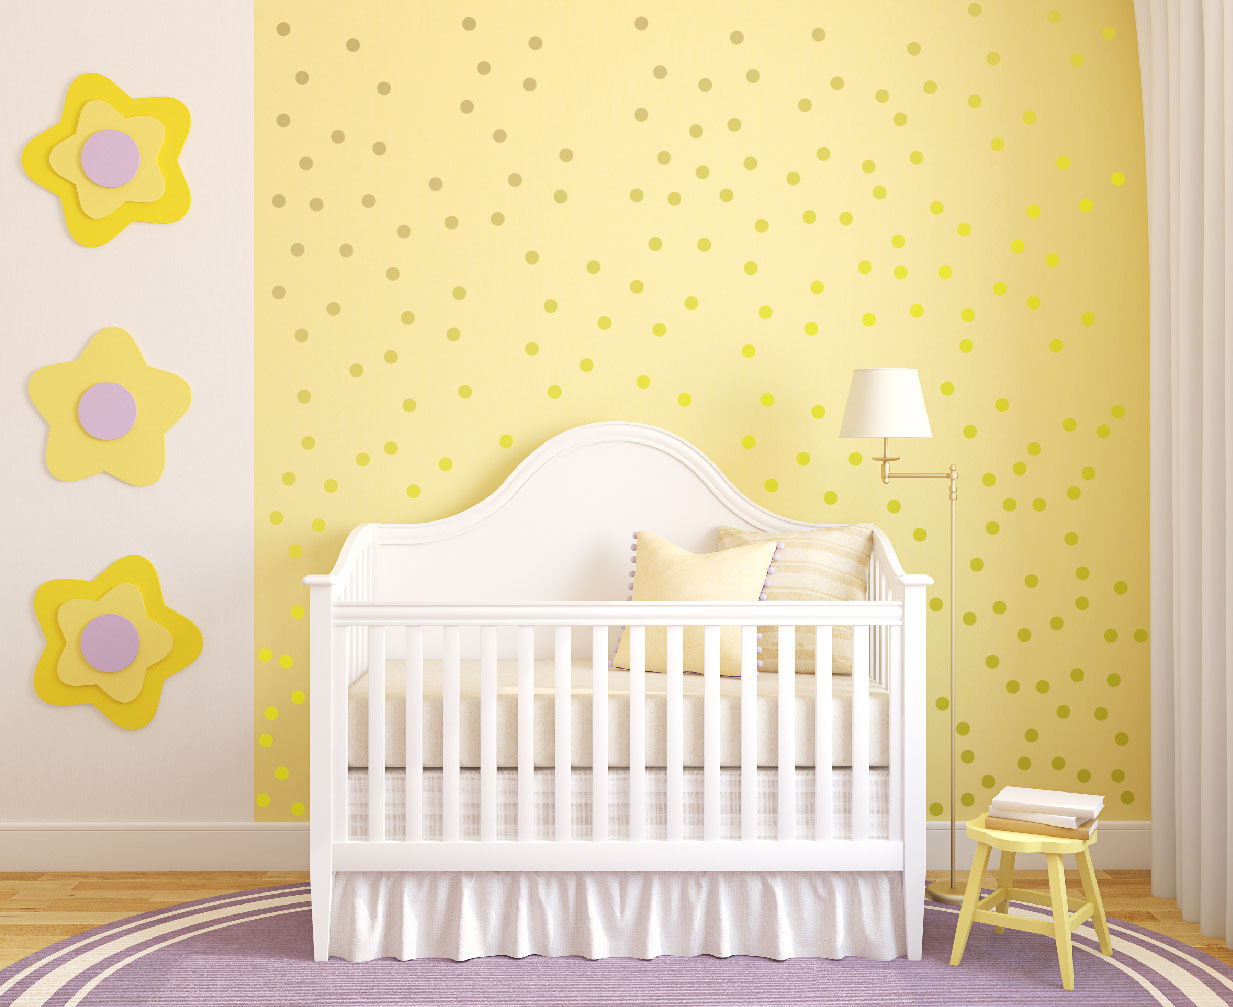 1326-gold-polka-dots-wall-decal-baby.jpg